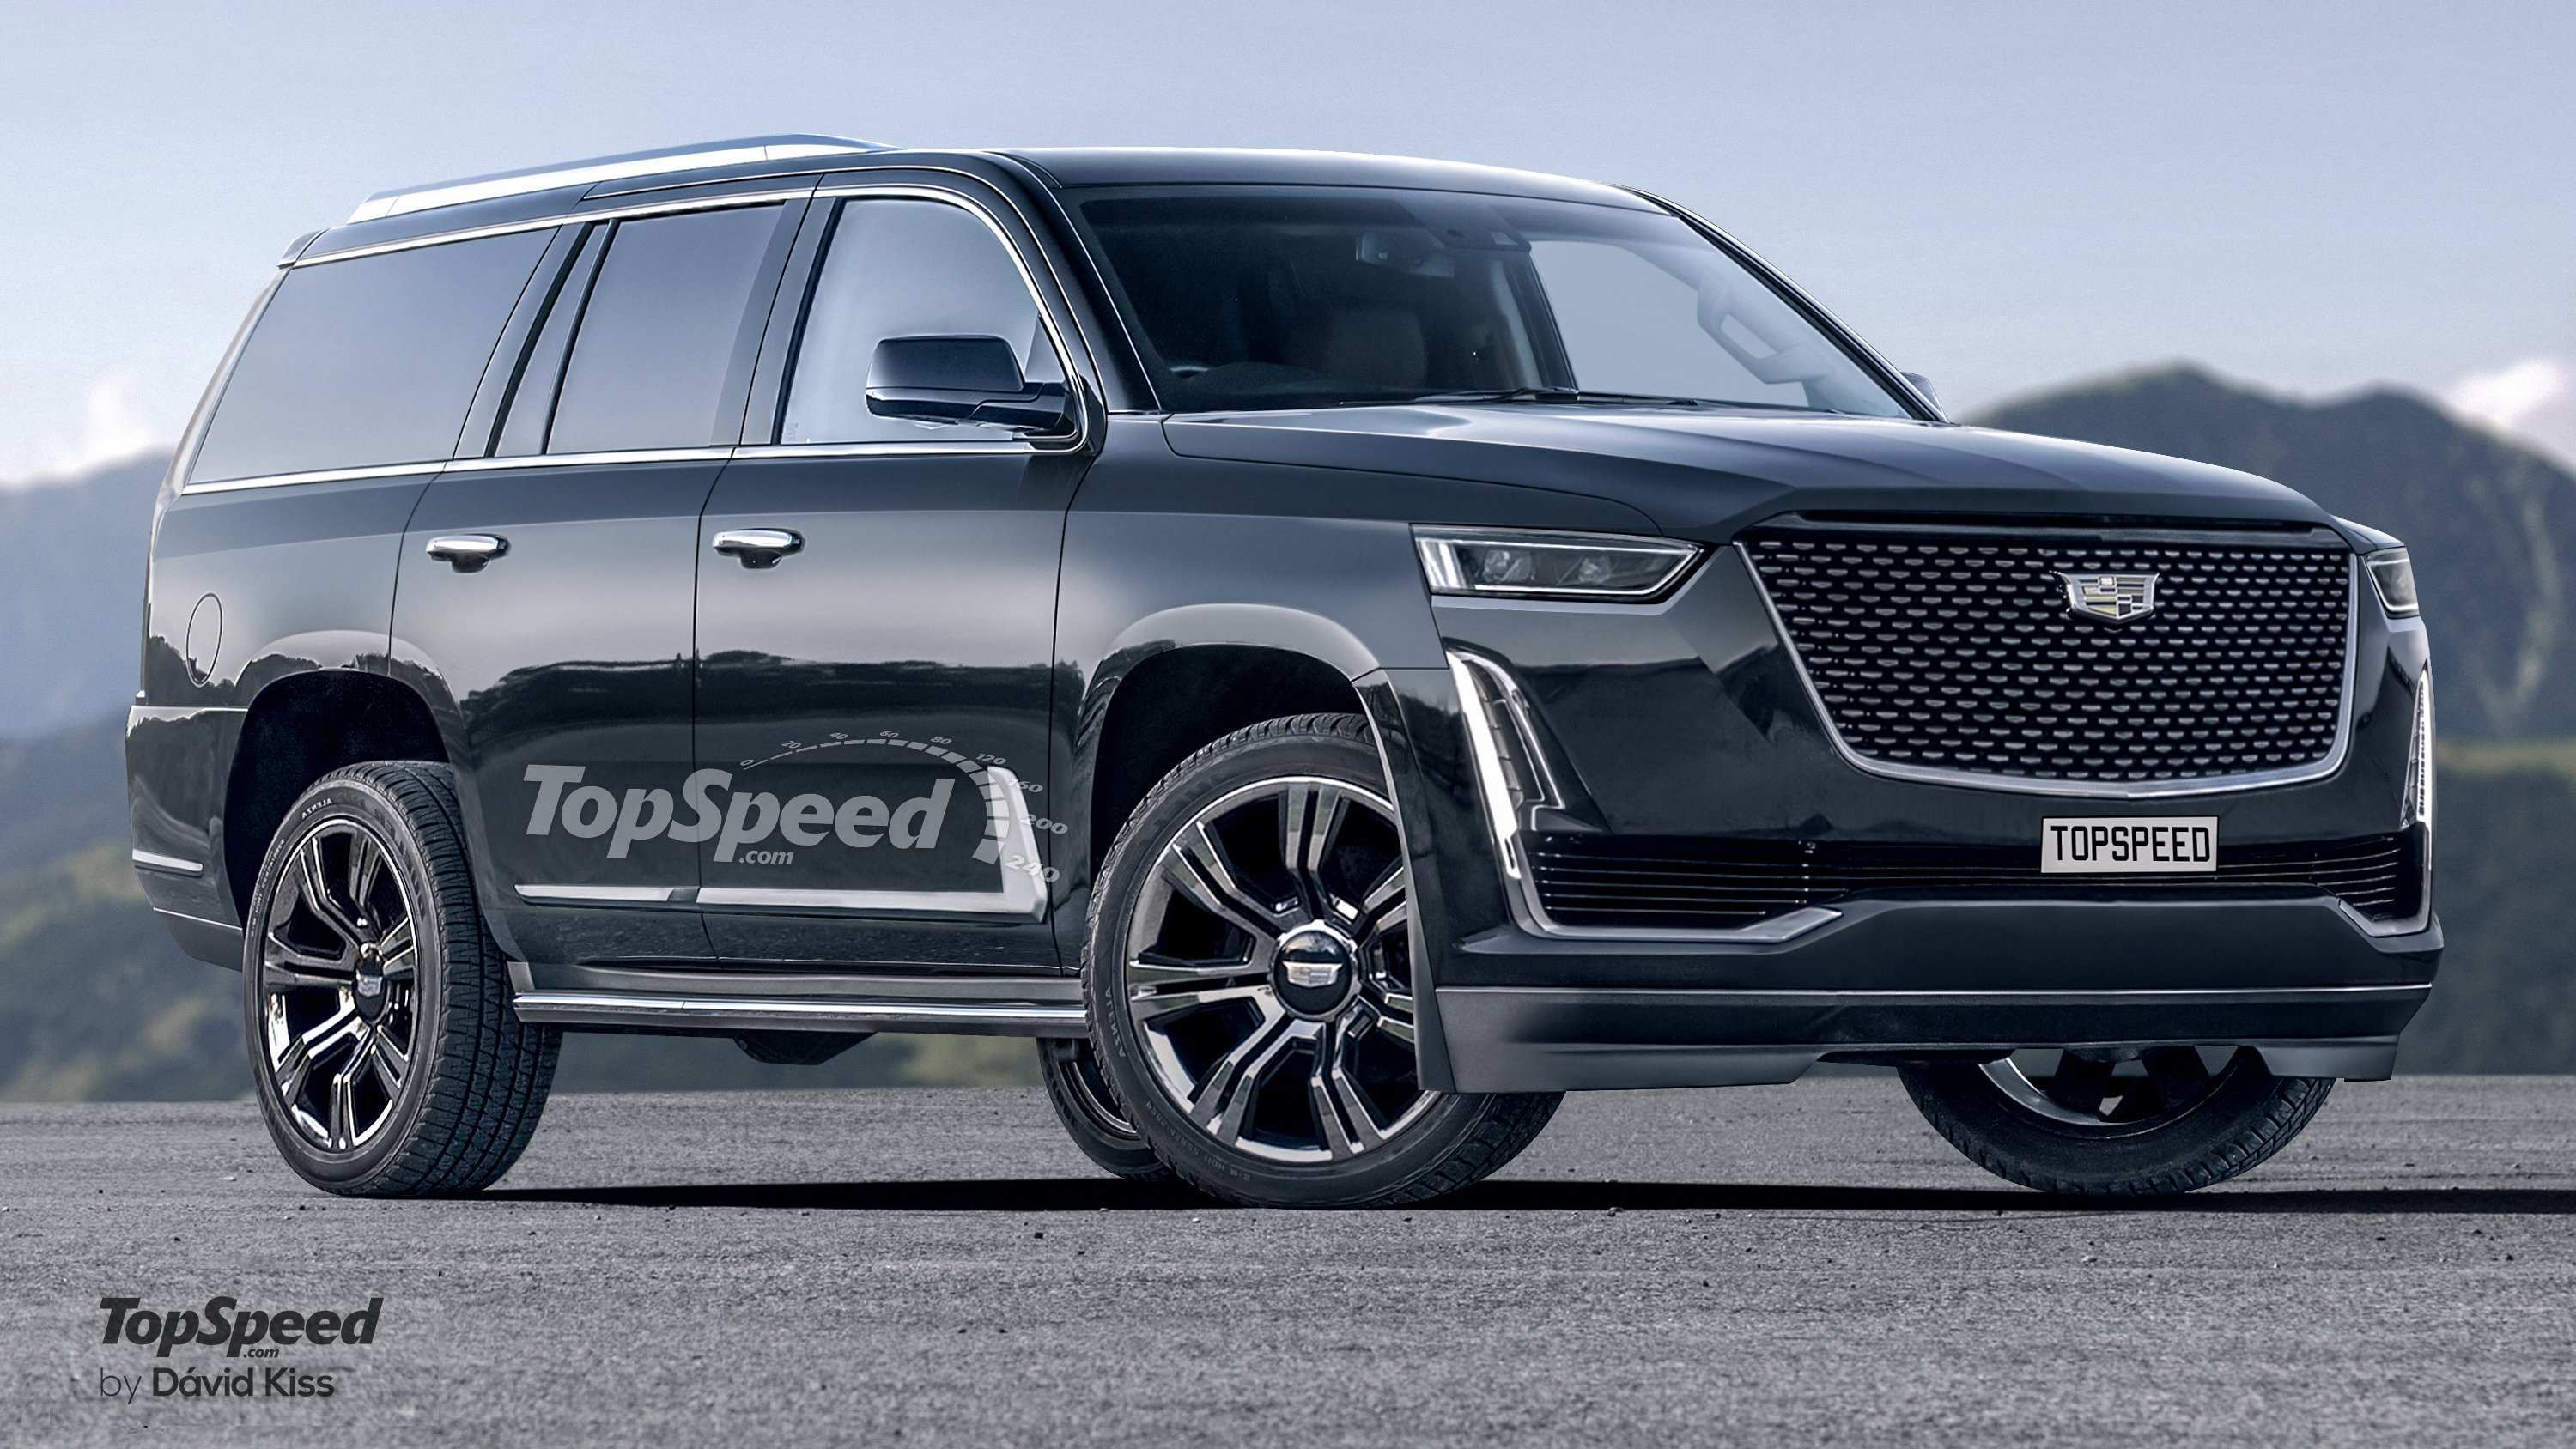 56 All New 2020 Cadillac Escalade Hybrid Redesign with 2020 Cadillac Escalade Hybrid